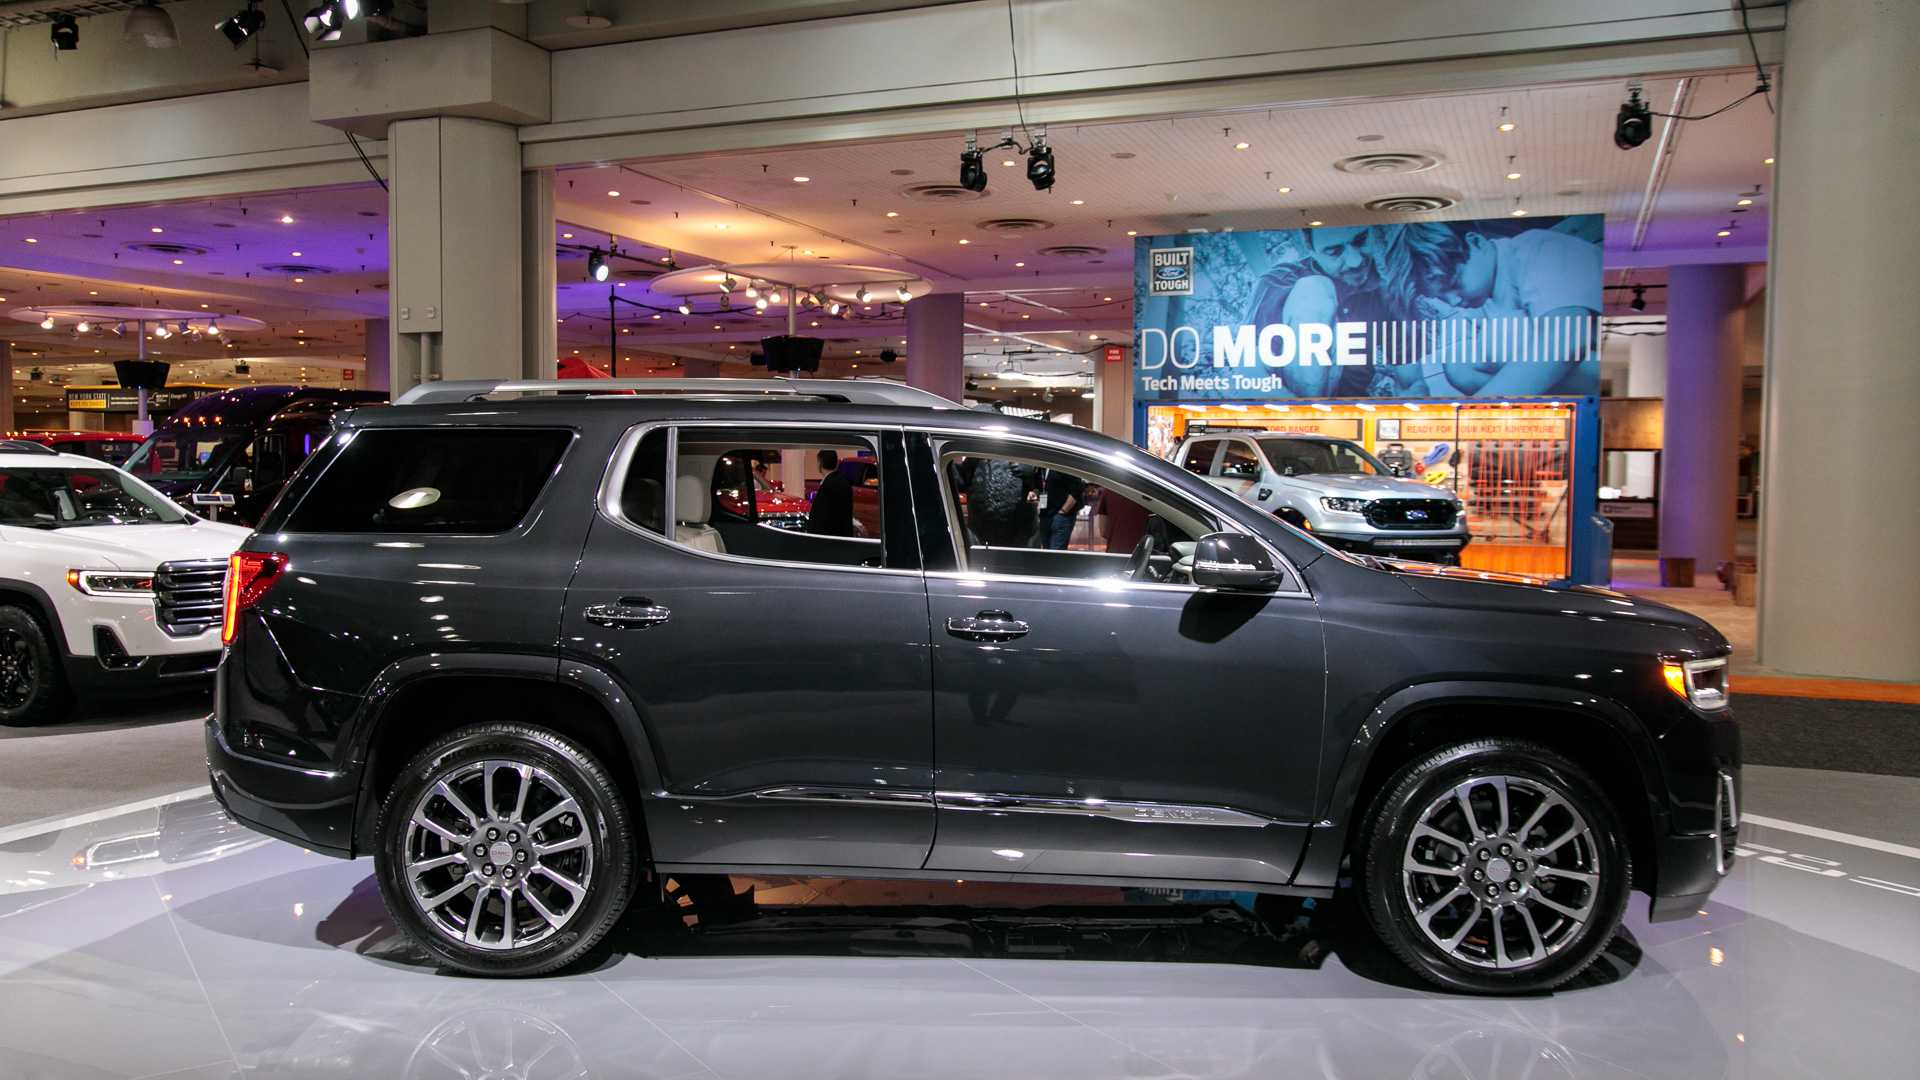 66 The Best 2020 Gmc Acadia Release Date Redesign And Review